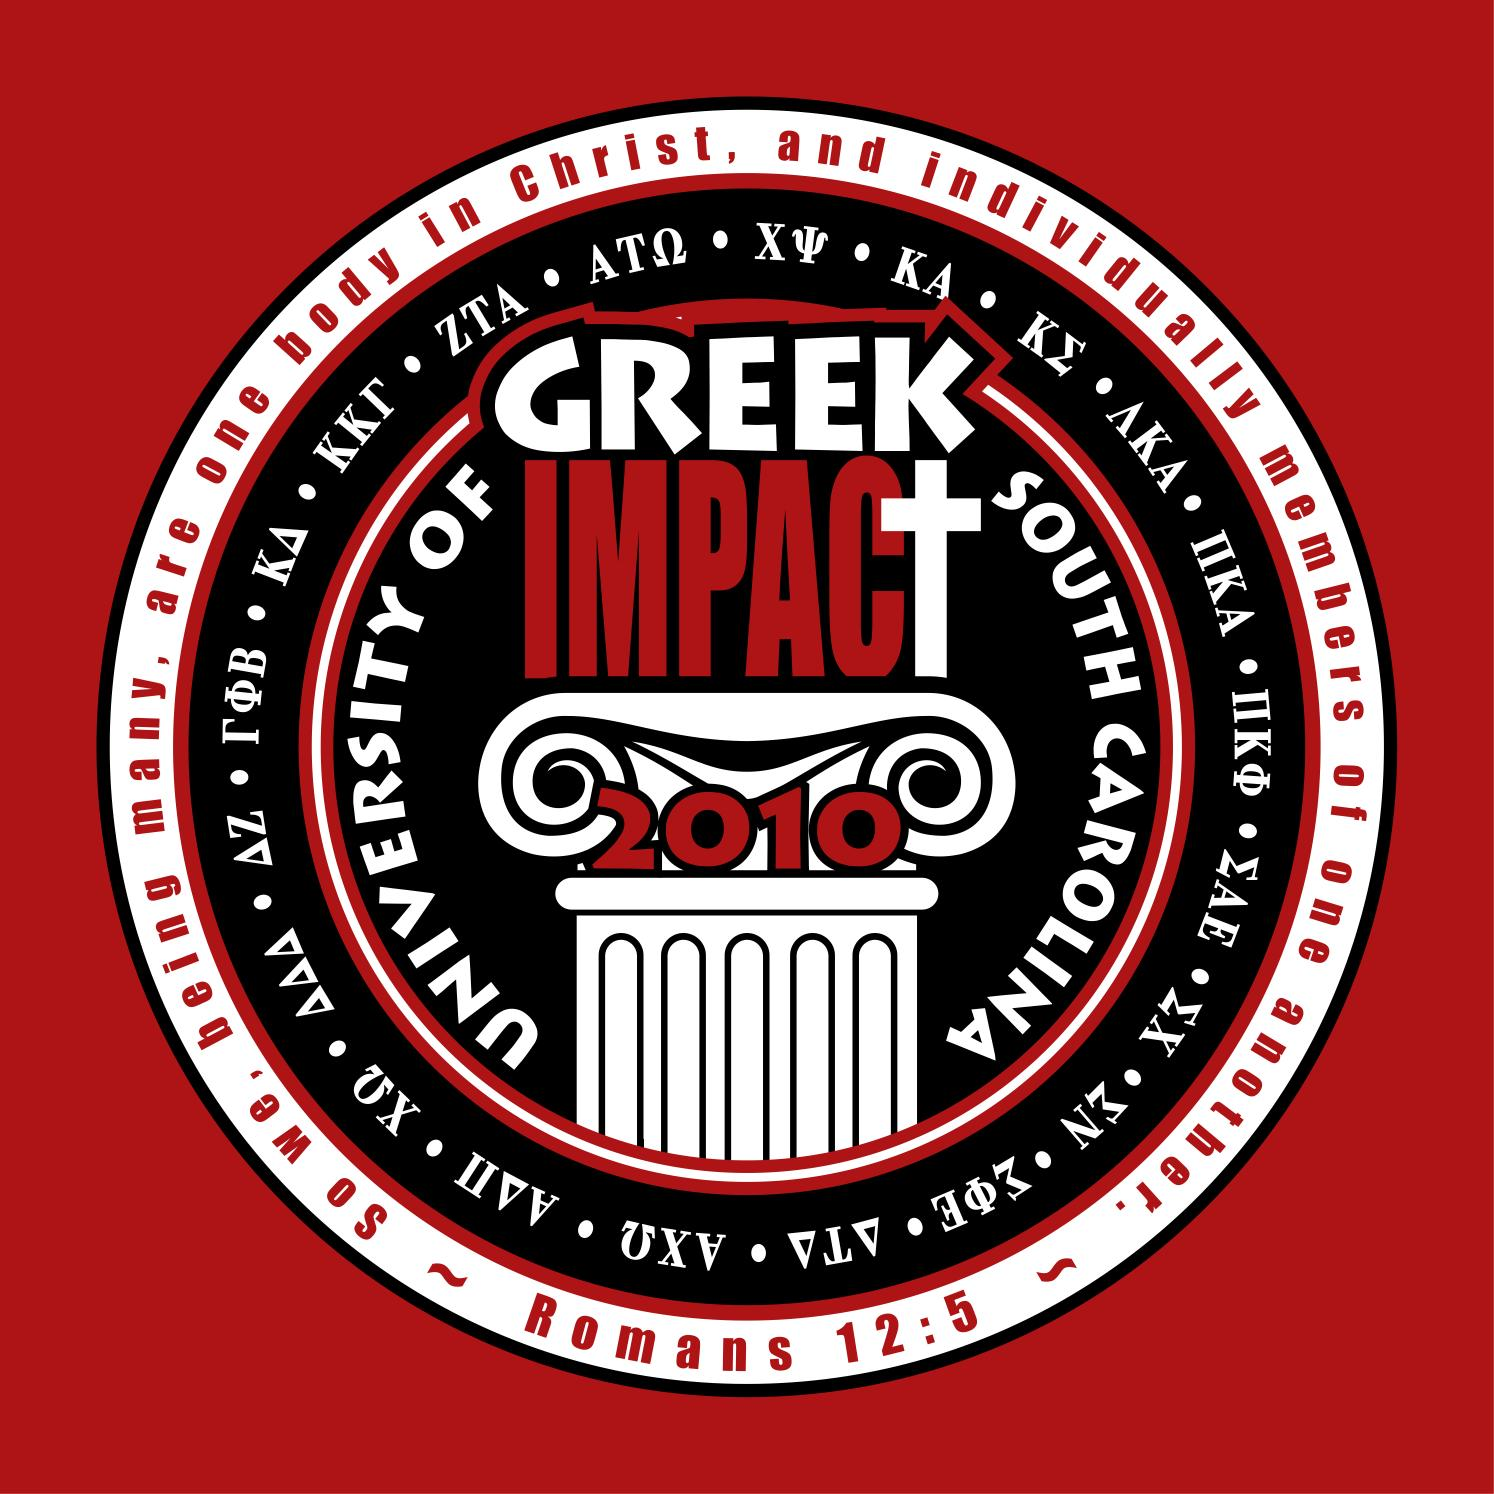 Greek Impact2010tshirt